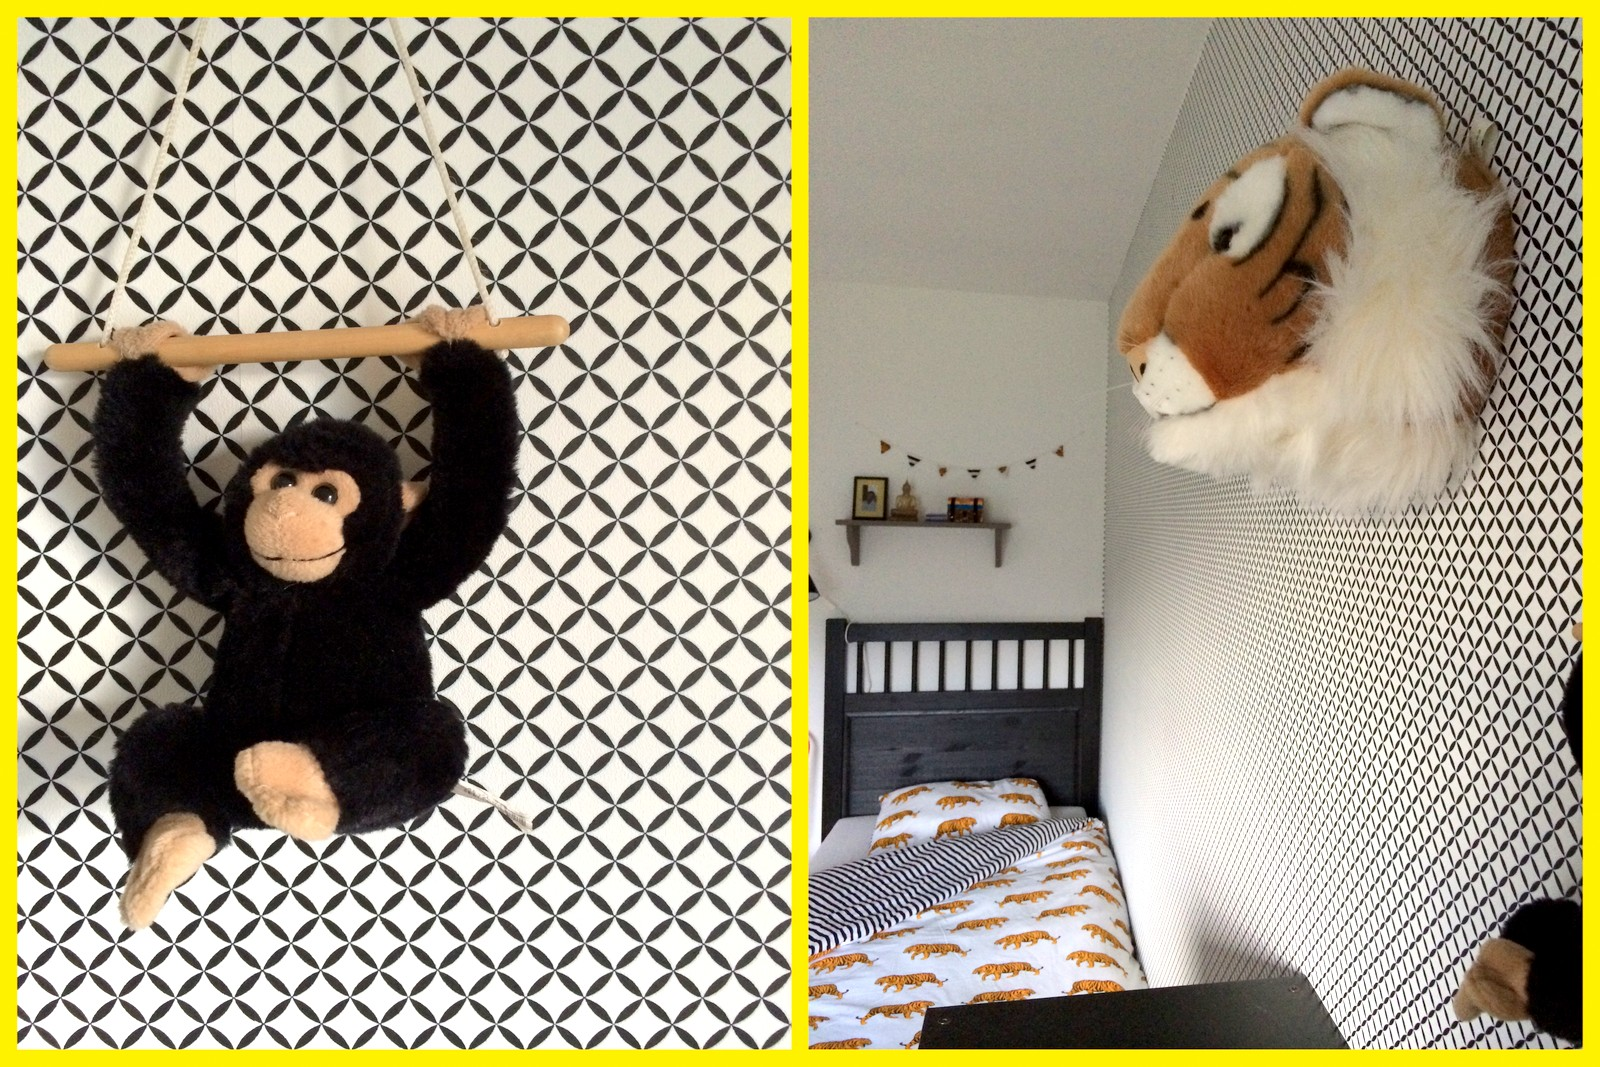 jakob's room (animals)